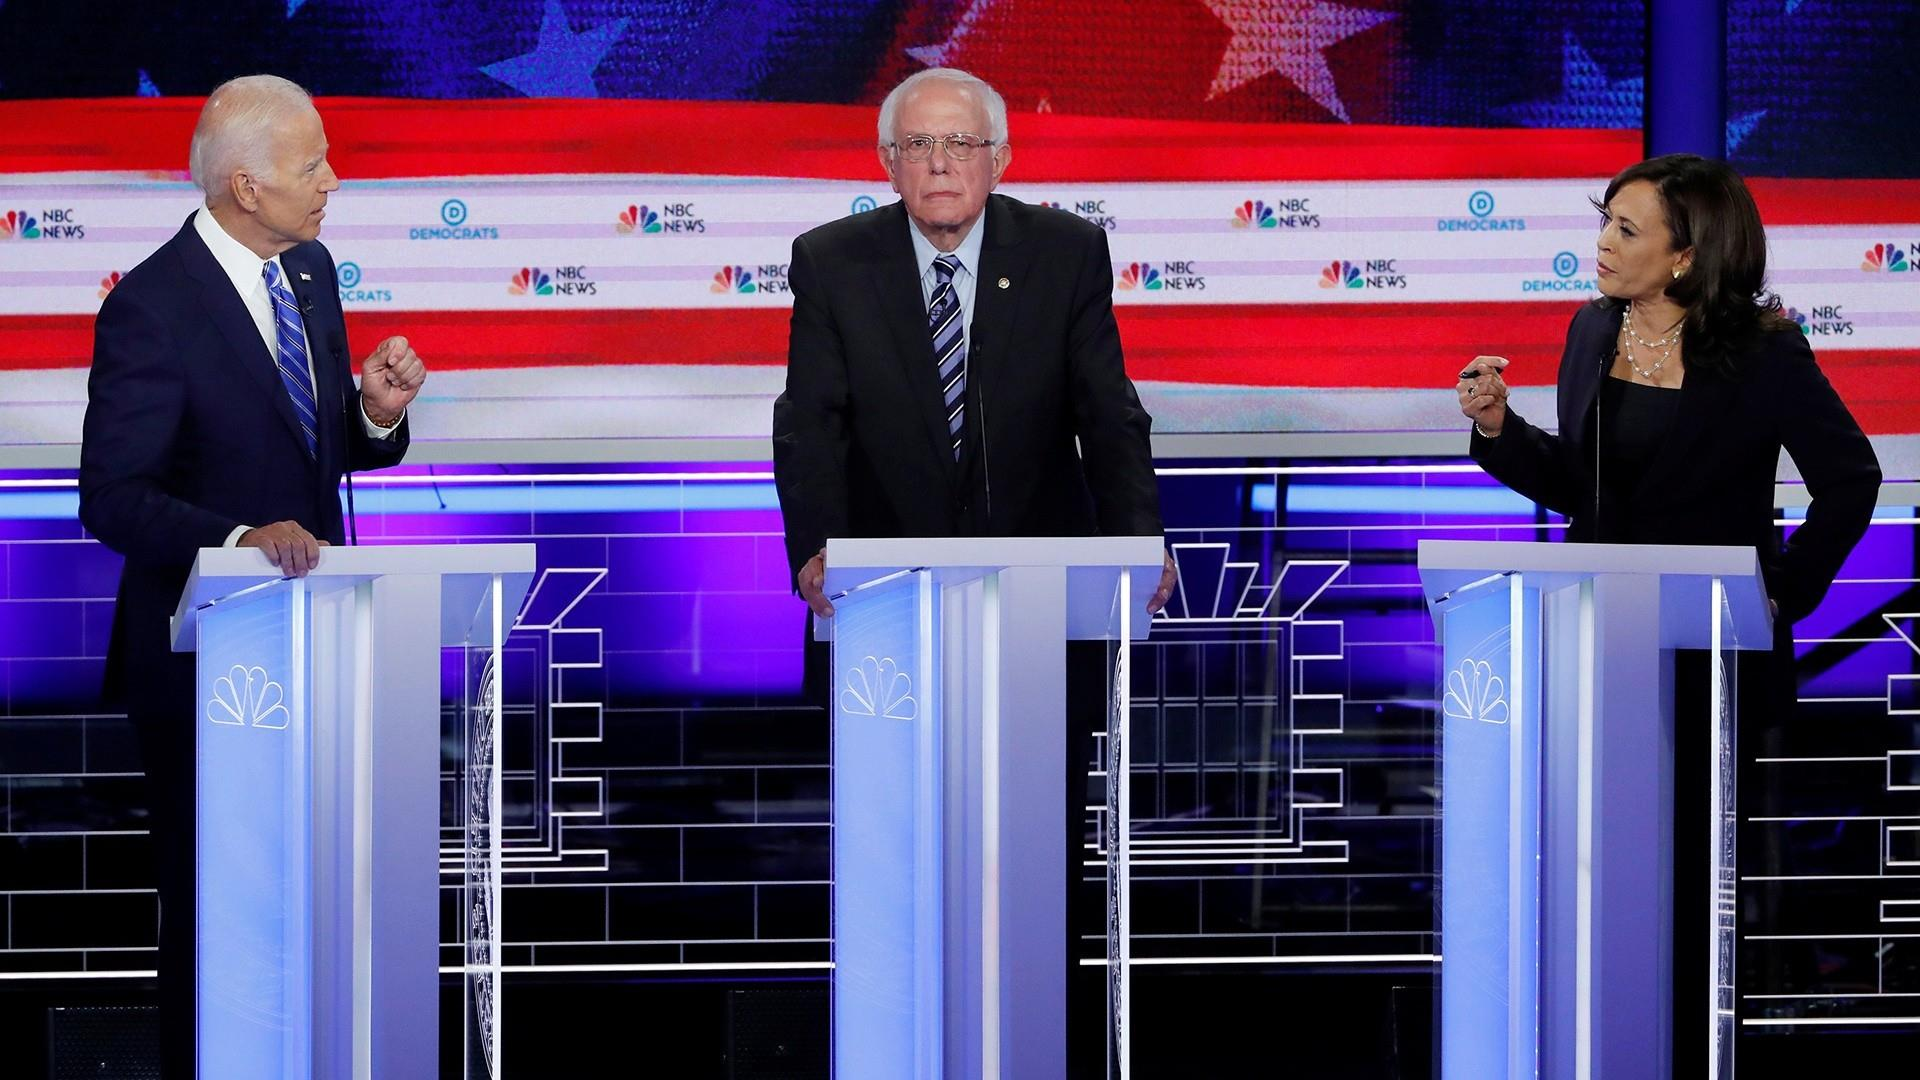 Report Feeds Debate Over Racial >> First Democratic Debate 2019 Live Updates From Night Two